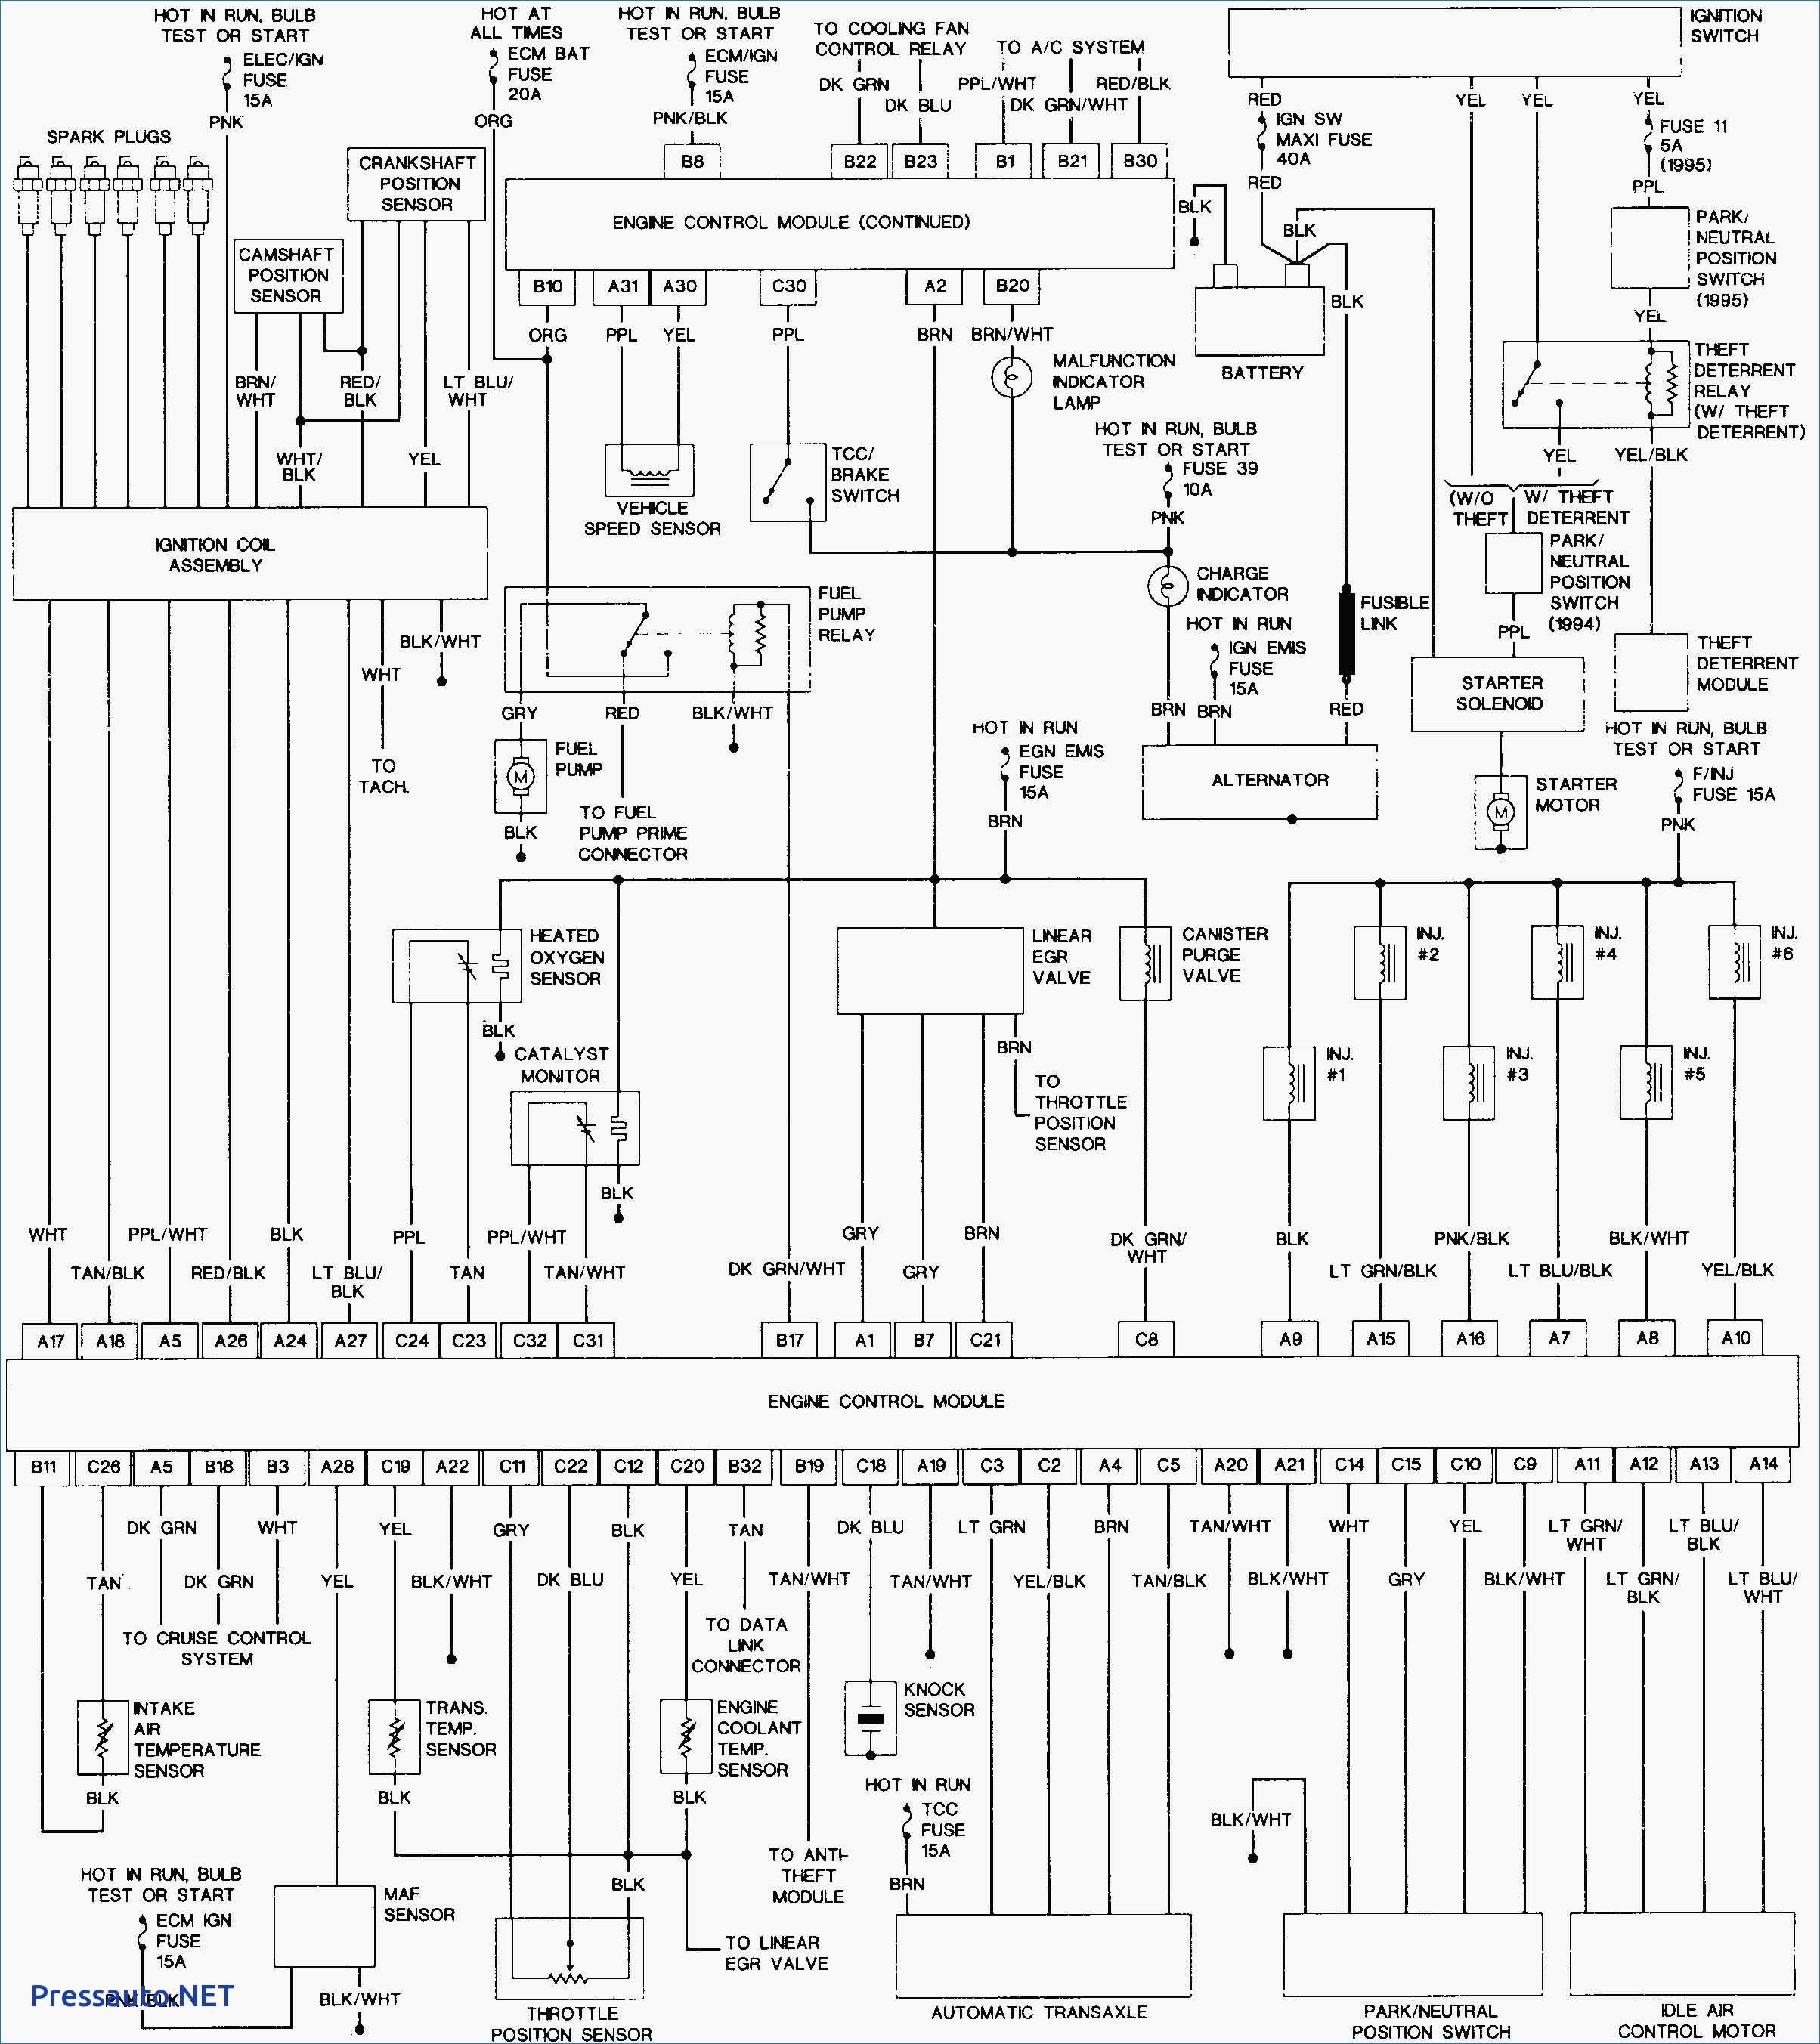 1979 Corvette Wiring Diagram All Generation Wiring Schematics Chevy ...